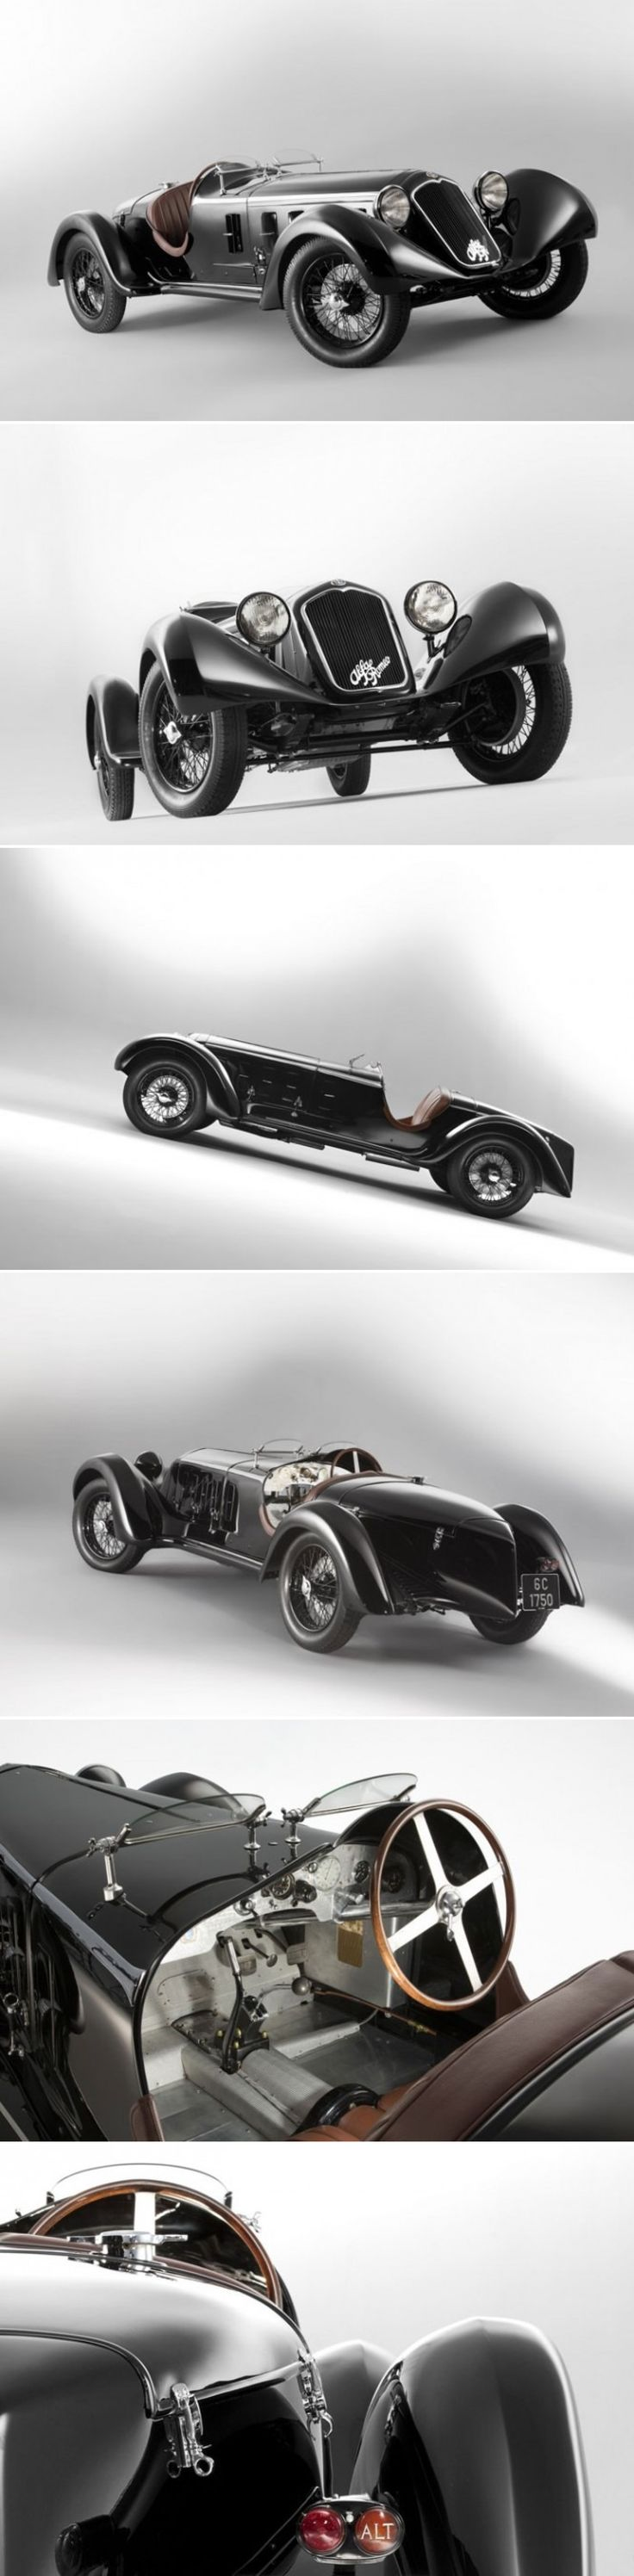 91 best Cars Old Cars images on Pinterest